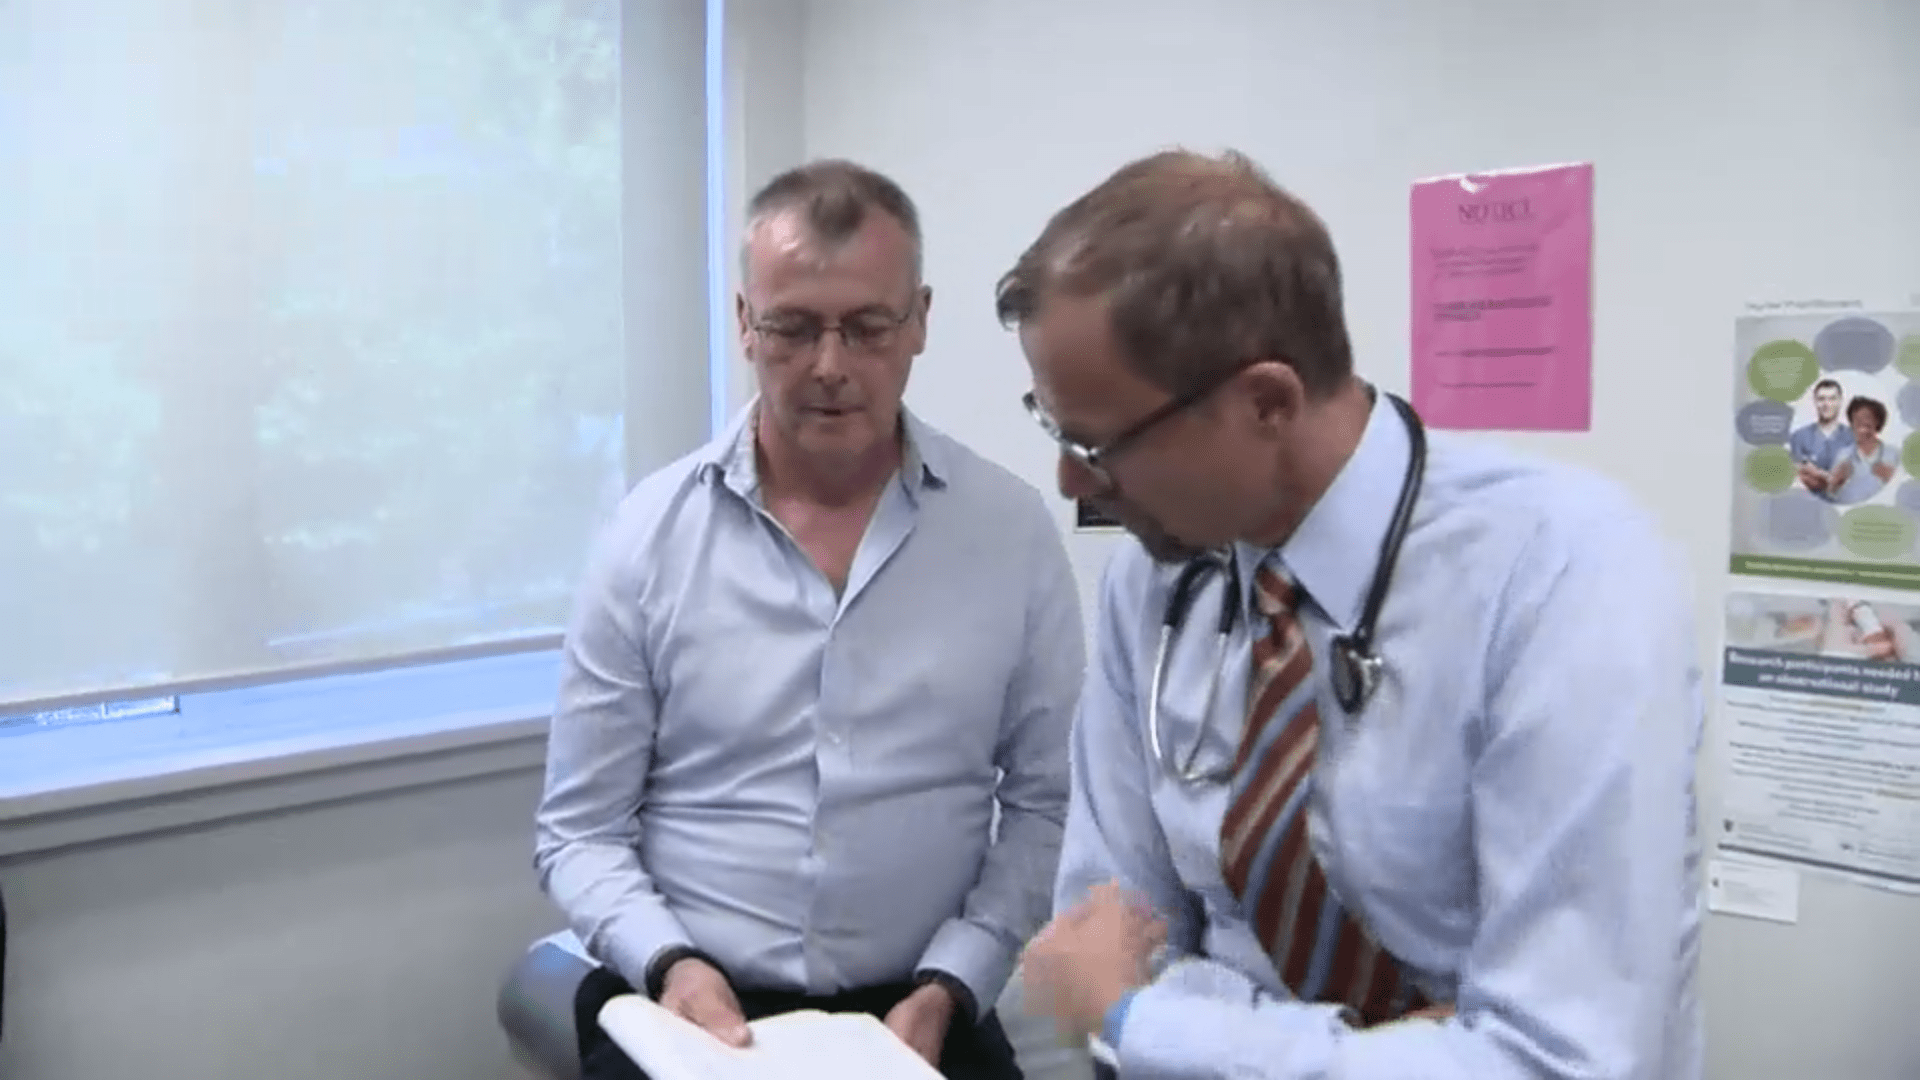 A man meeting with his doctor in a medical office